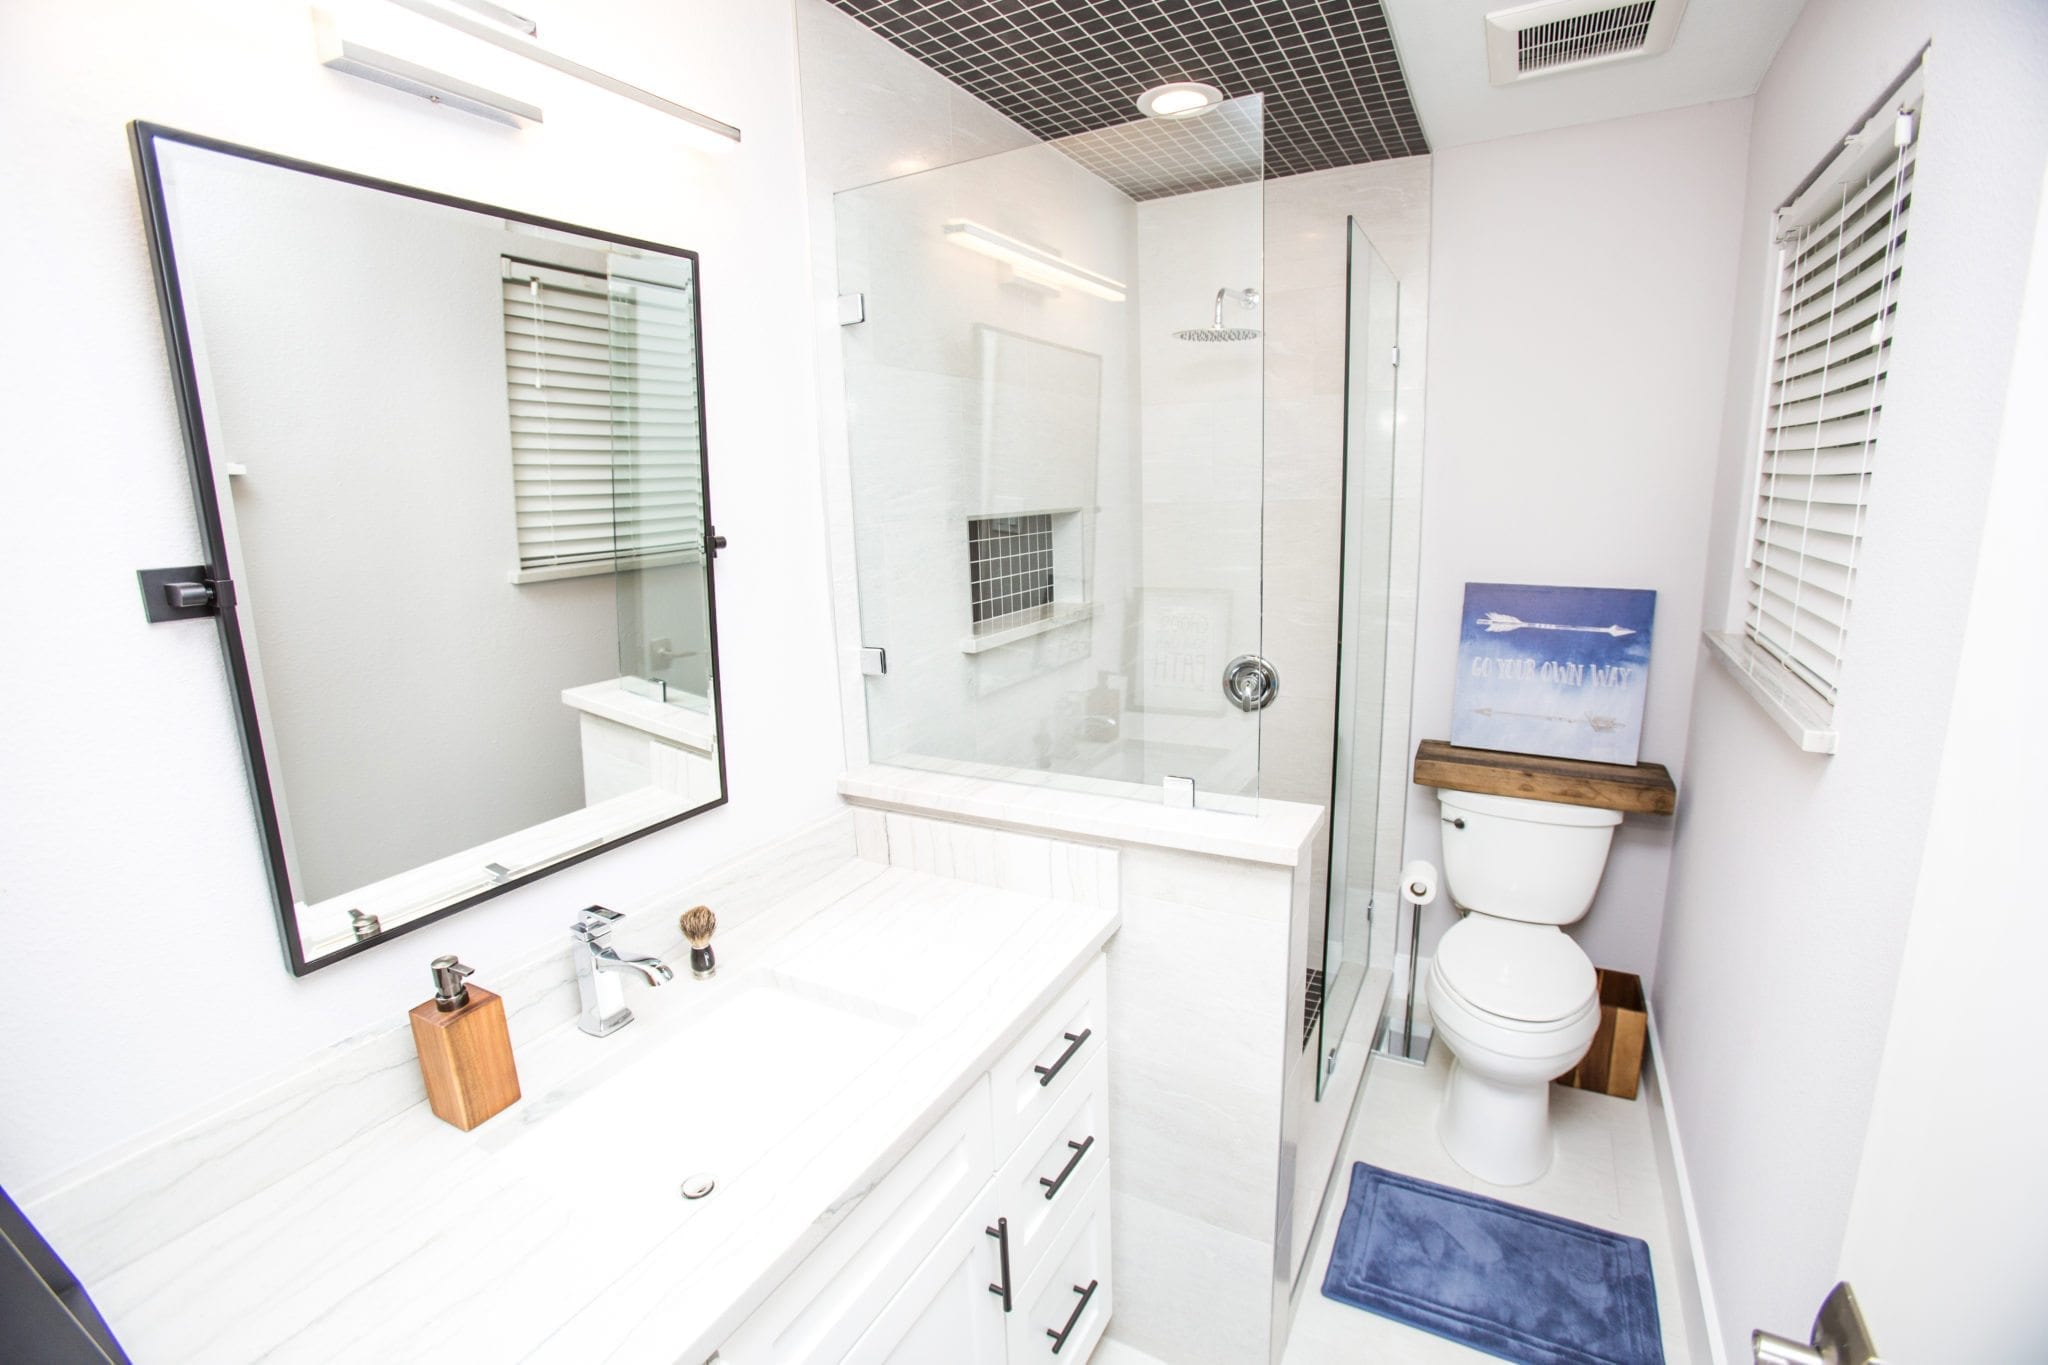 Raleigh Bathroom Remodeling ContractorFinding The Best Home - Raleigh bathroom remodeling contractor